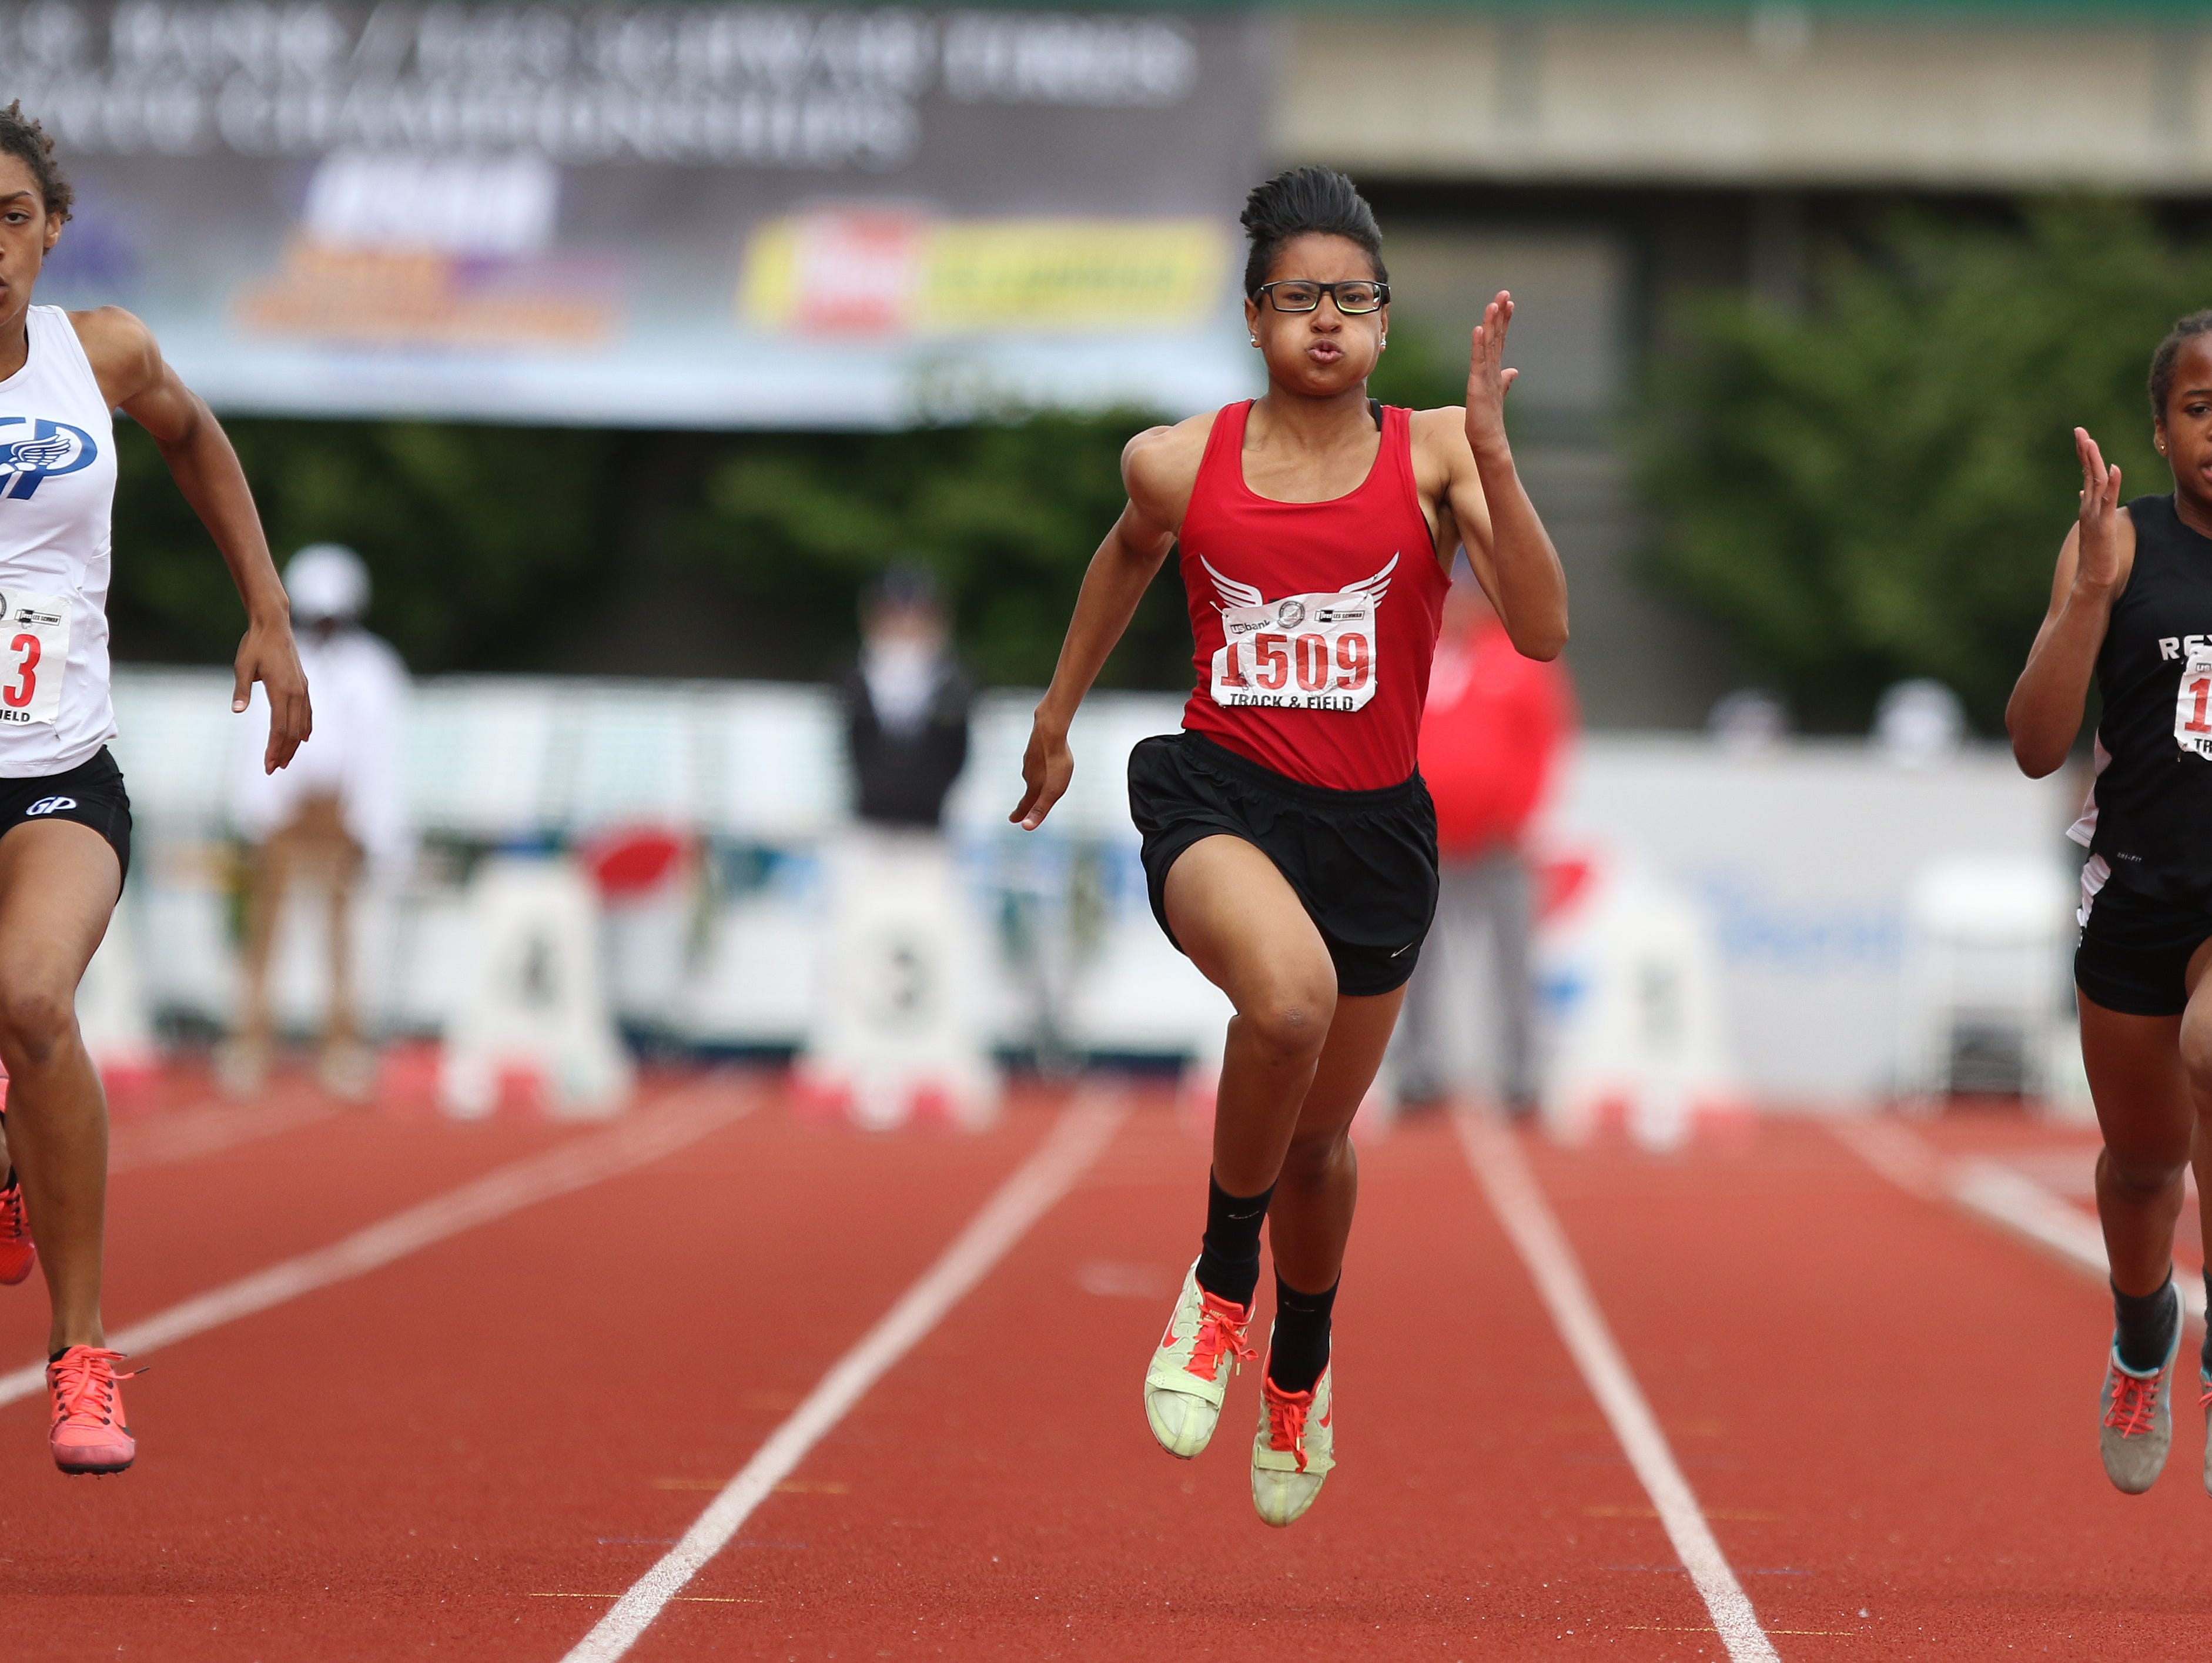 North Salem's Rebekah Miller (center) won the 6A state championship in the 100-meter dash last season, but the Vikings have struggled in most of the OSAA-designated team sports.